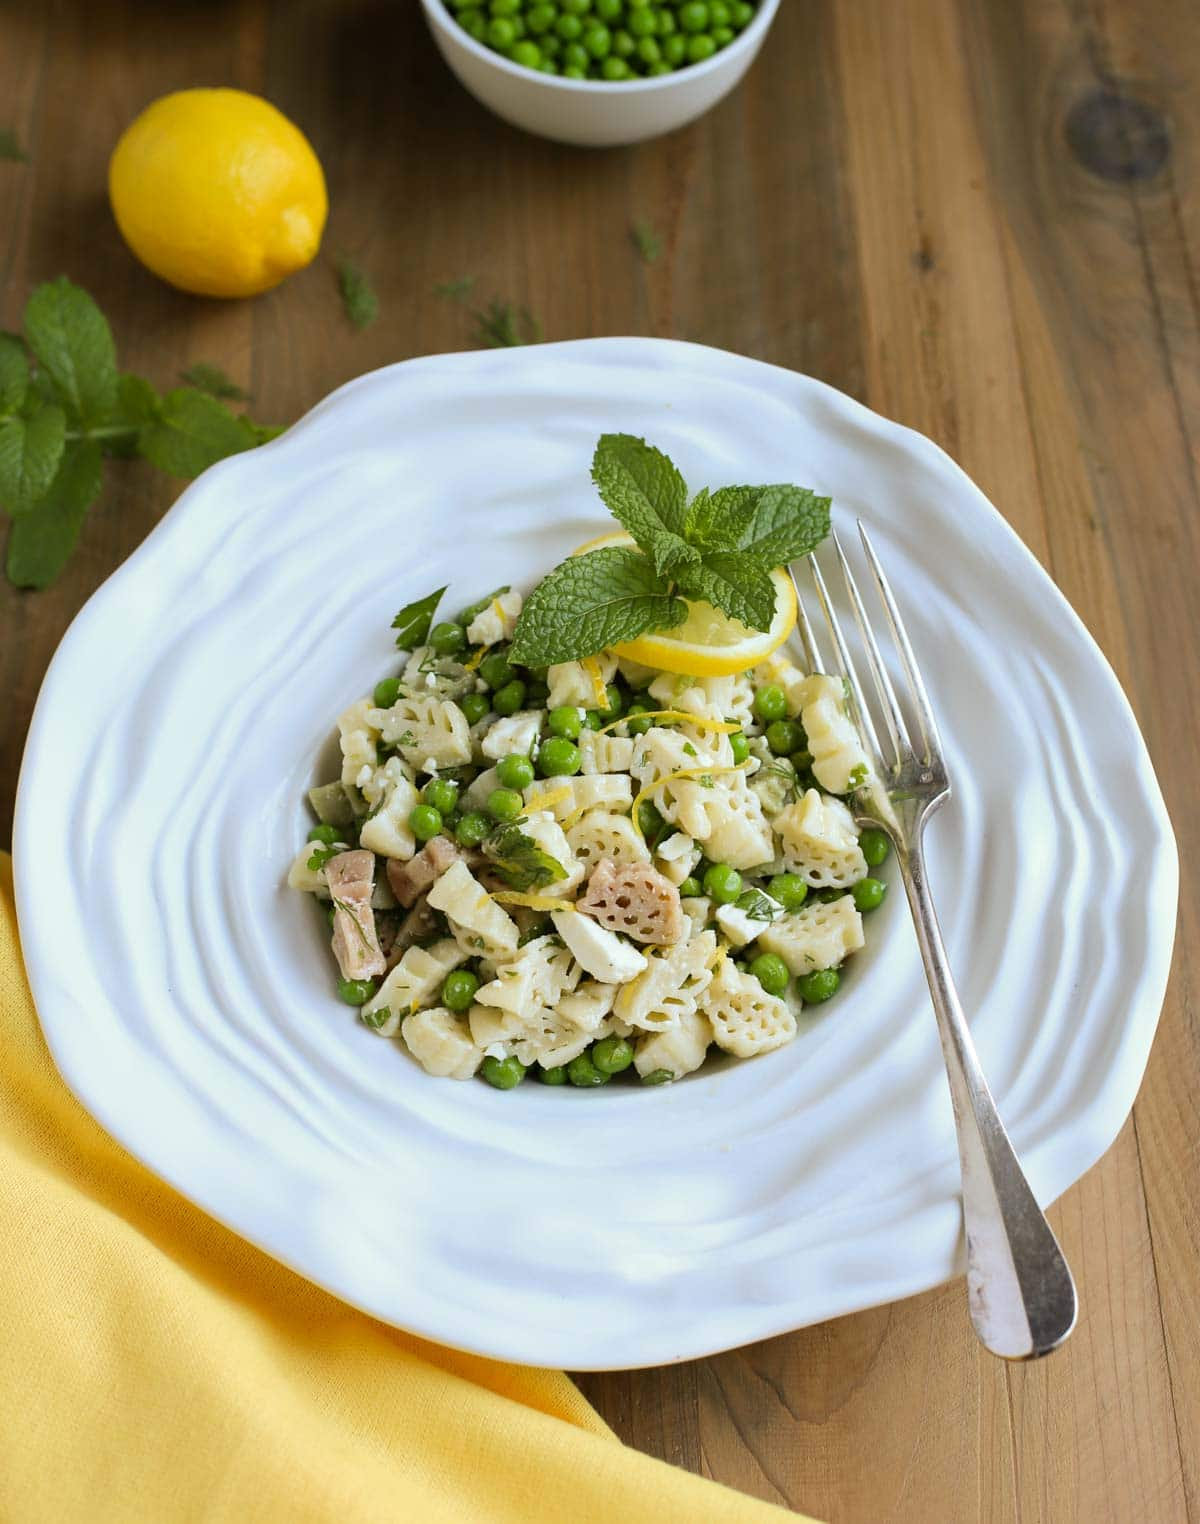 Light and Herby Mediterranean Pasta Salad | Lemon, Feta, and Fresh Chopped Herbs make this a light and delicious side dish! A tangy vinaigrette dressing ties it all together...yum! Great with any grilled meats or seafood! | WorldofPastabilities.com